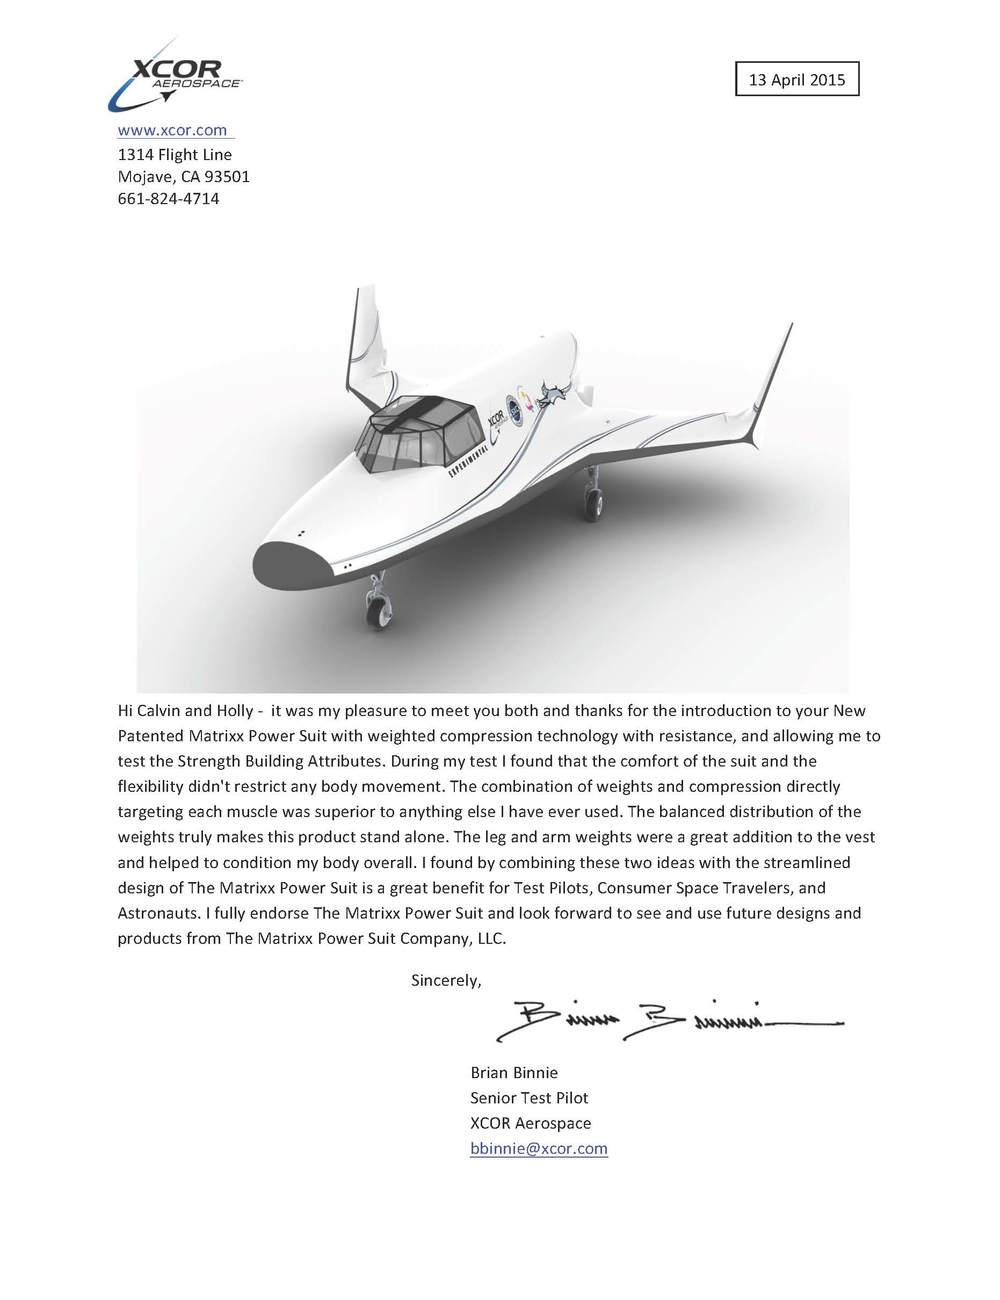 Matrixx Endorsement letter - Brian Binnie.jpg